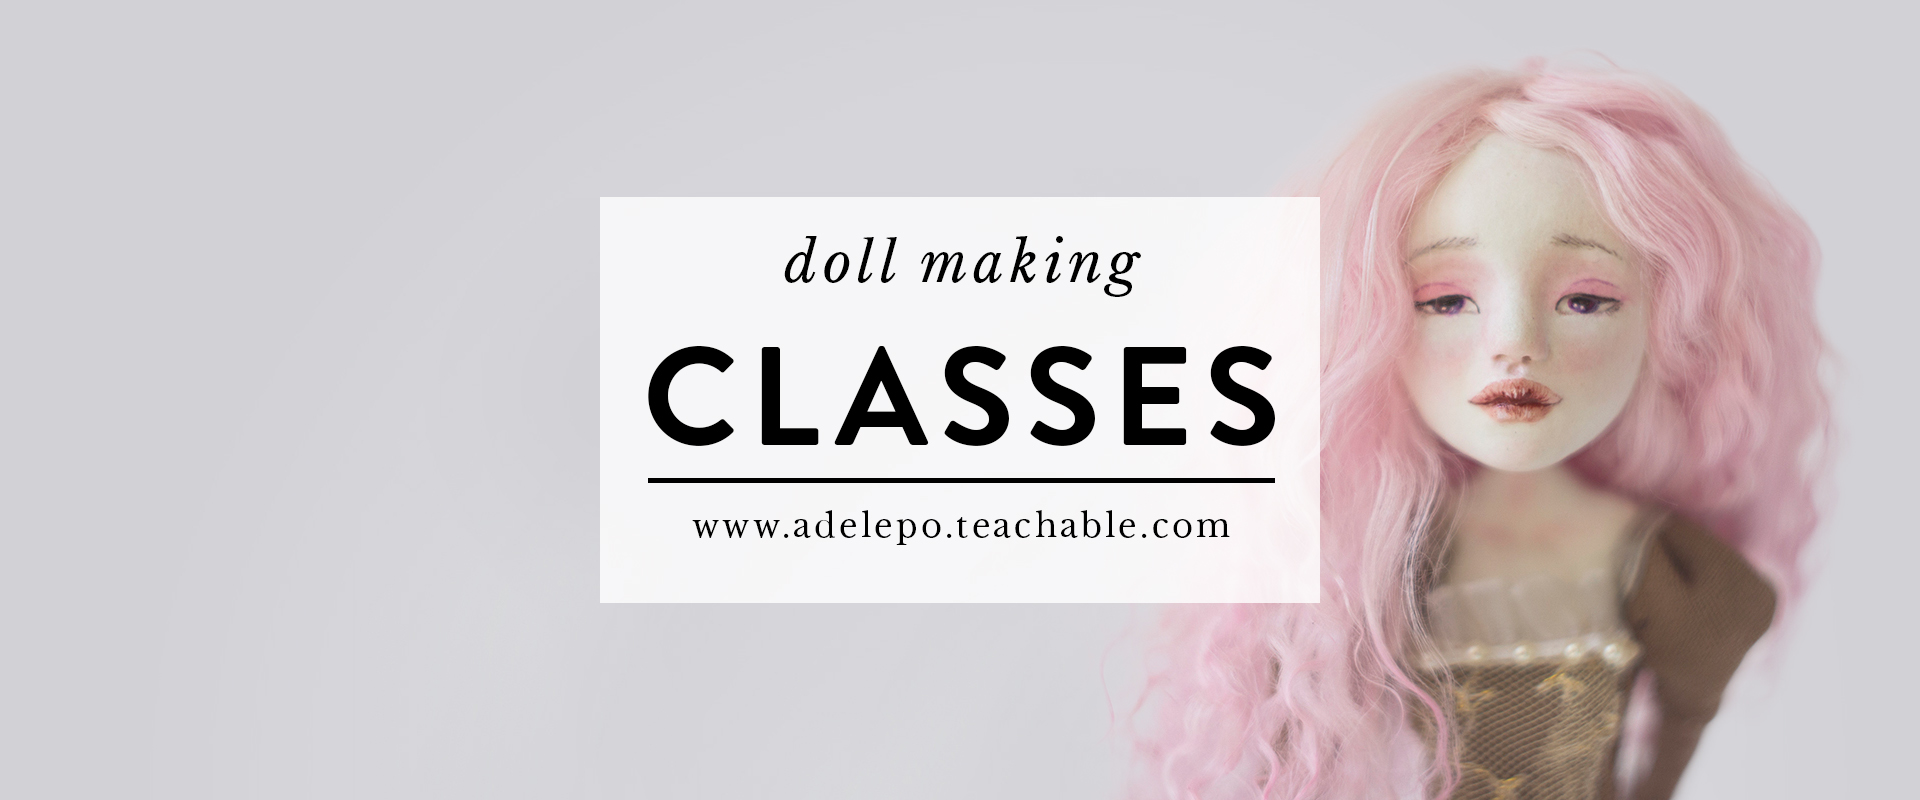 doll making classes by adelepo teachable.jpg